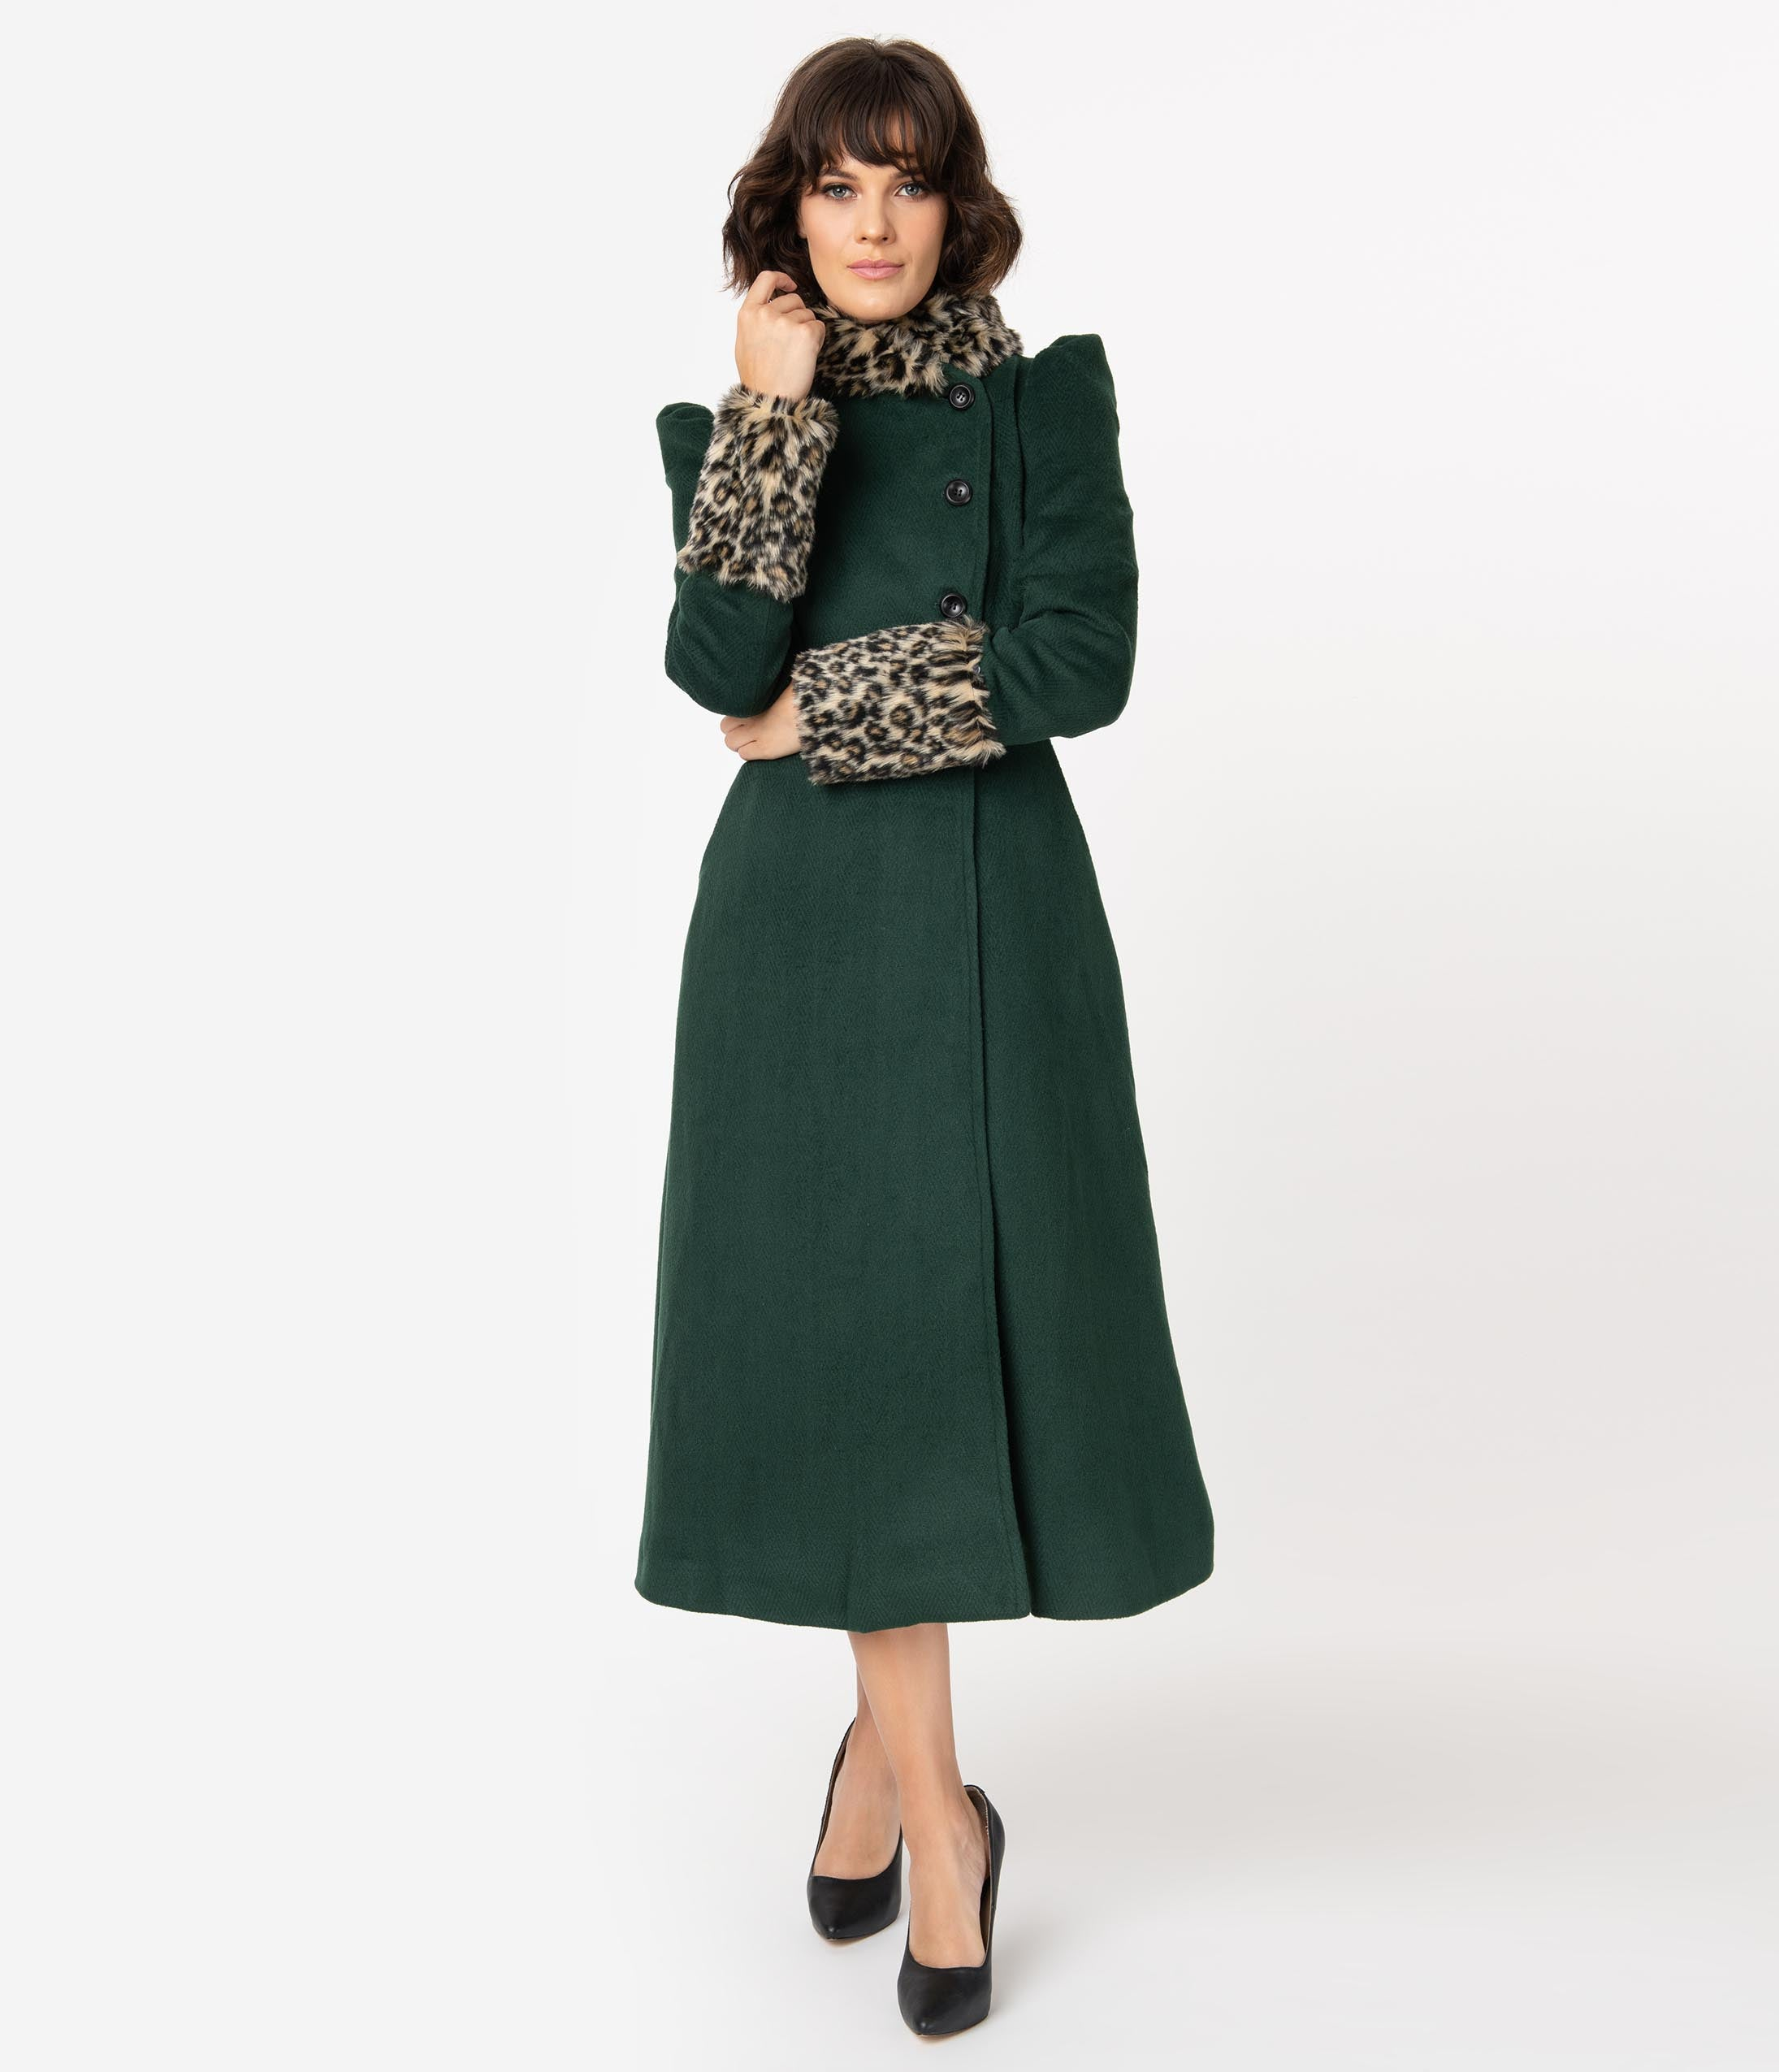 Vintage Coats & Jackets | Retro Coats and Jackets Voodoo Vixen 1940S Emerald Green  Leopard Fur Long Coat $172.00 AT vintagedancer.com